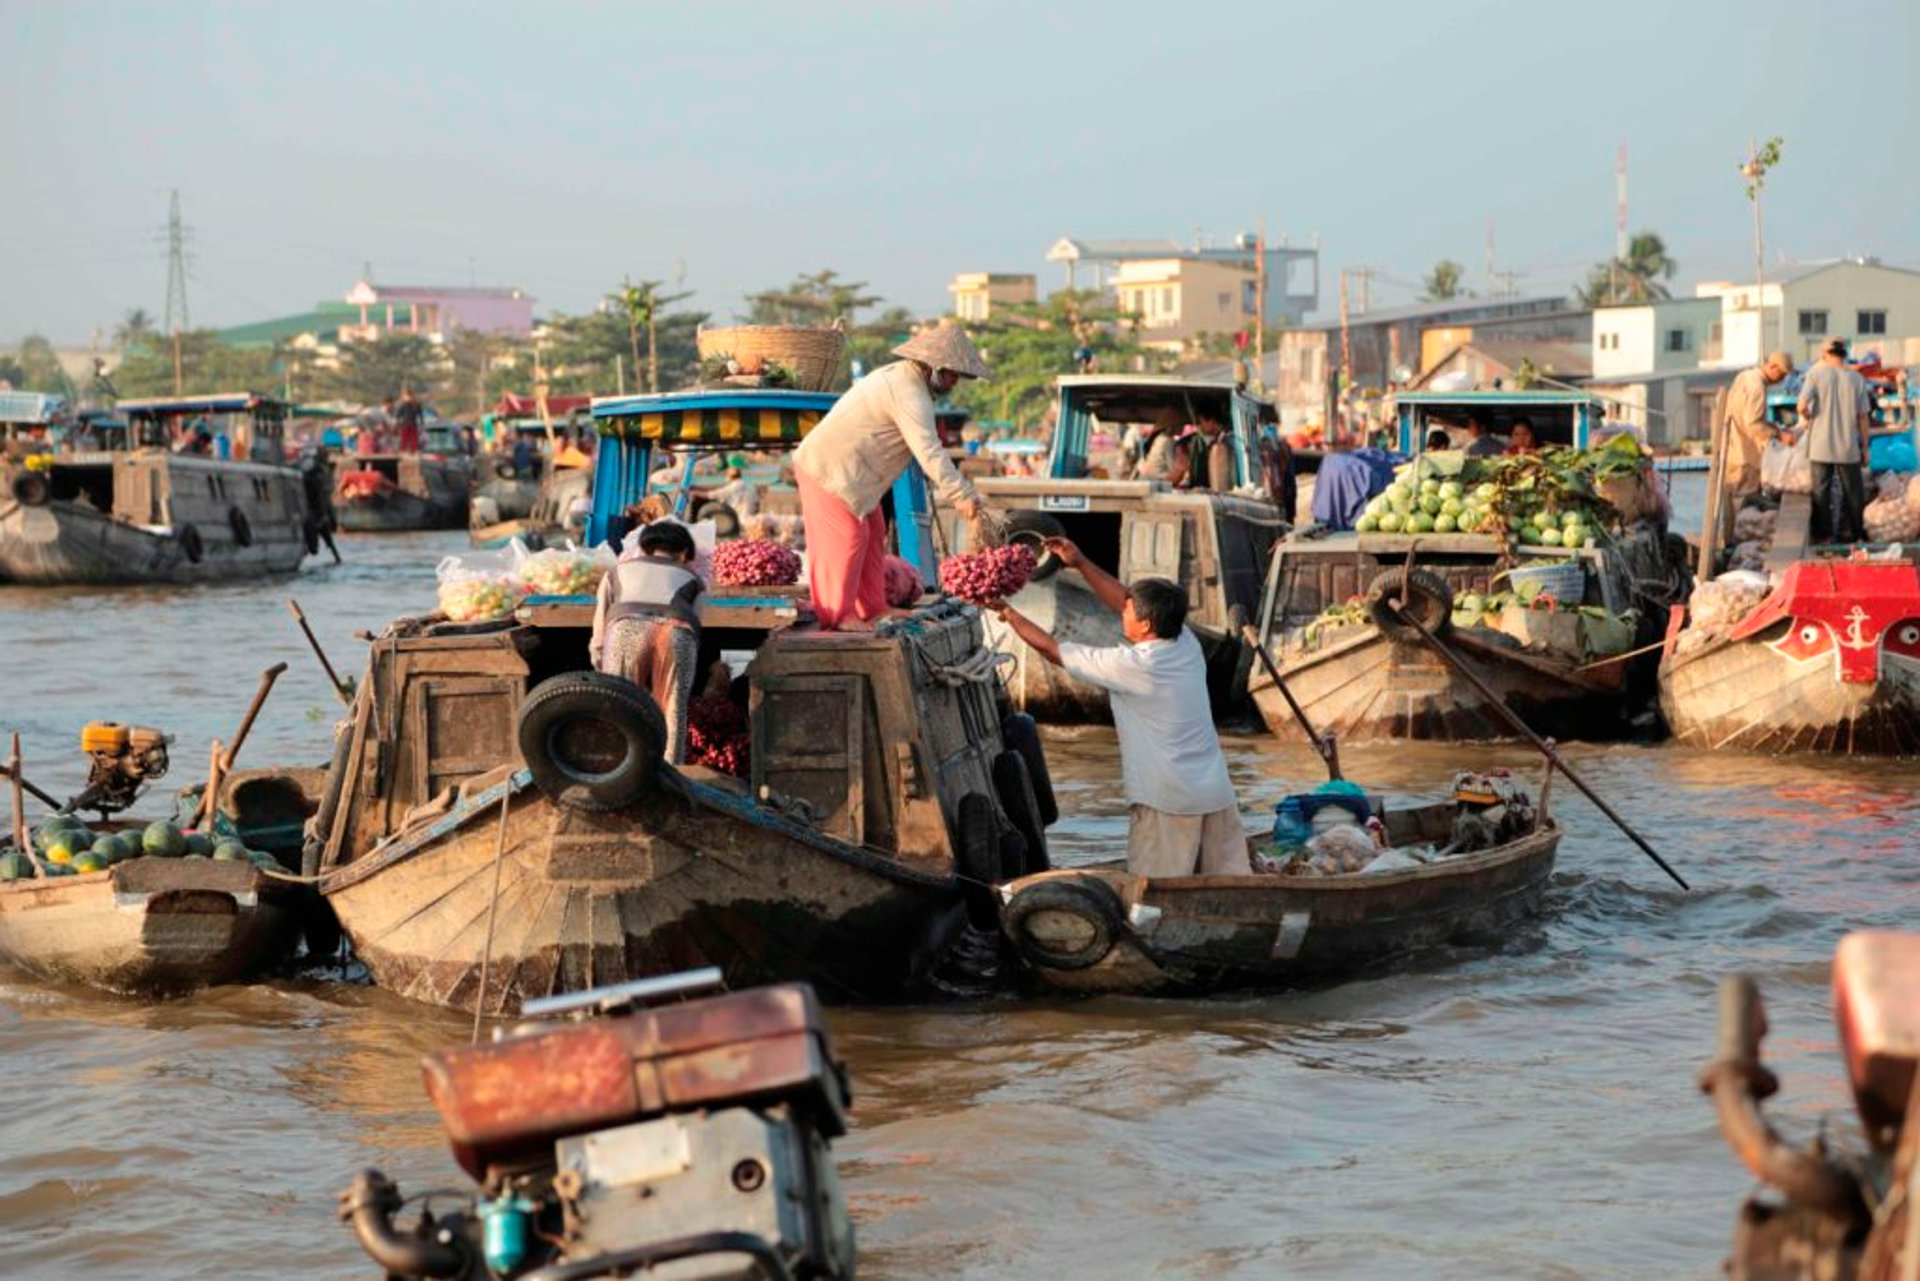 Mekong River Boat Trip in Cambodia - Best Season 2020